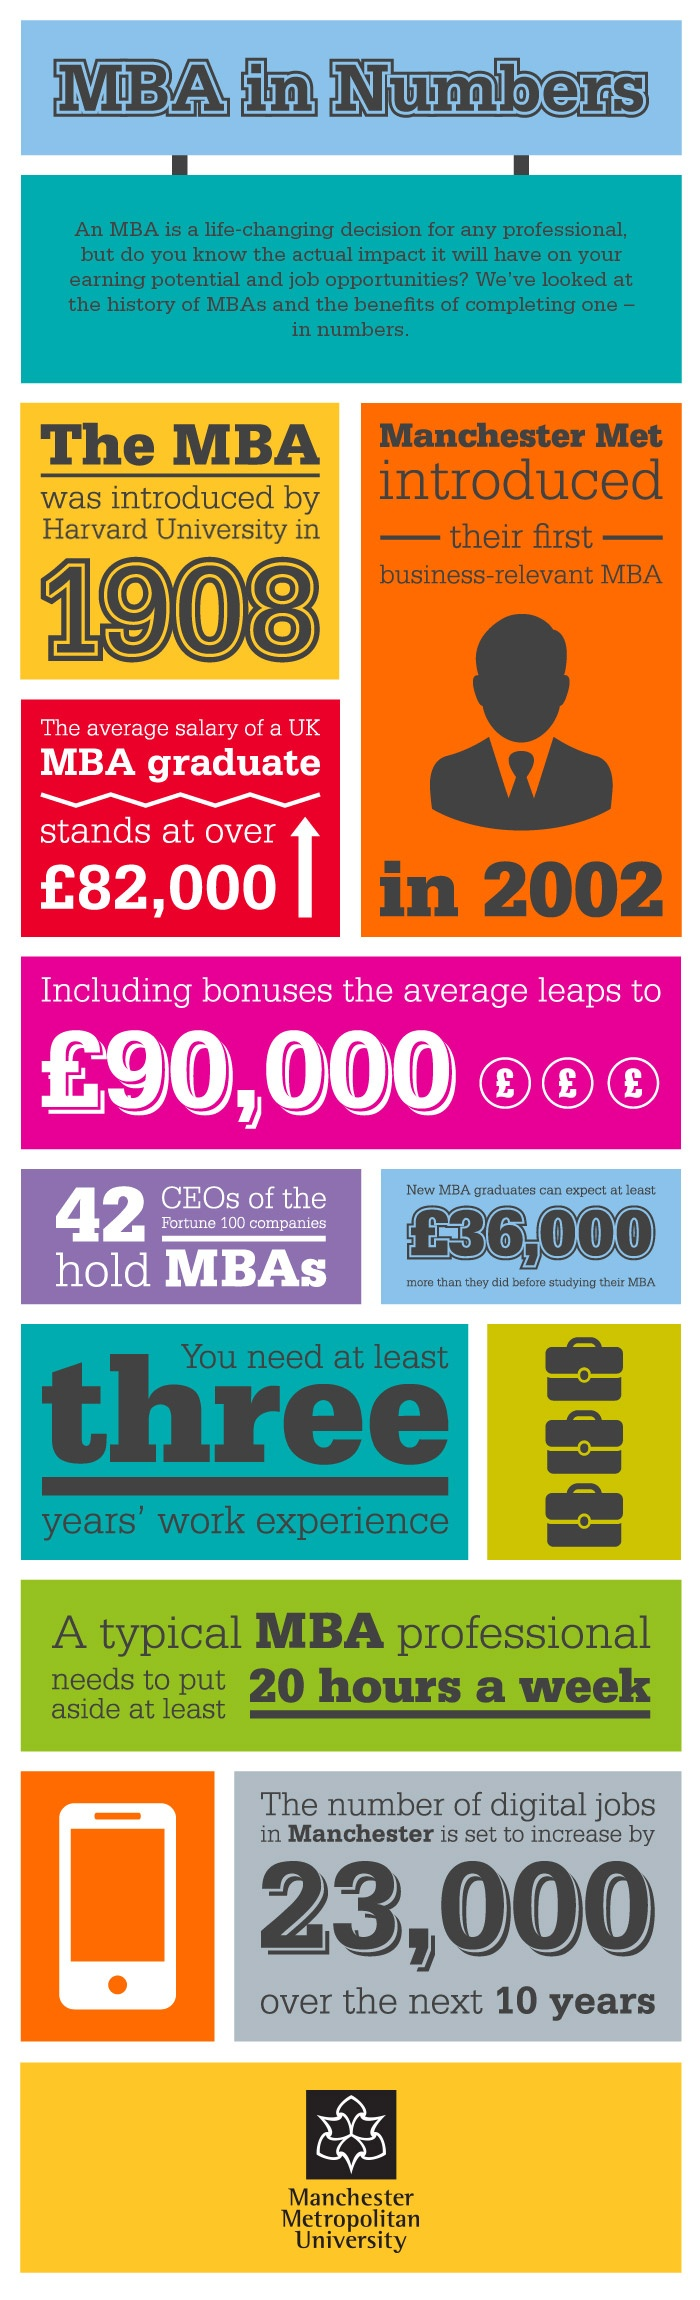 Man-Met---MBA-in-Numbers-Infographic.jpg